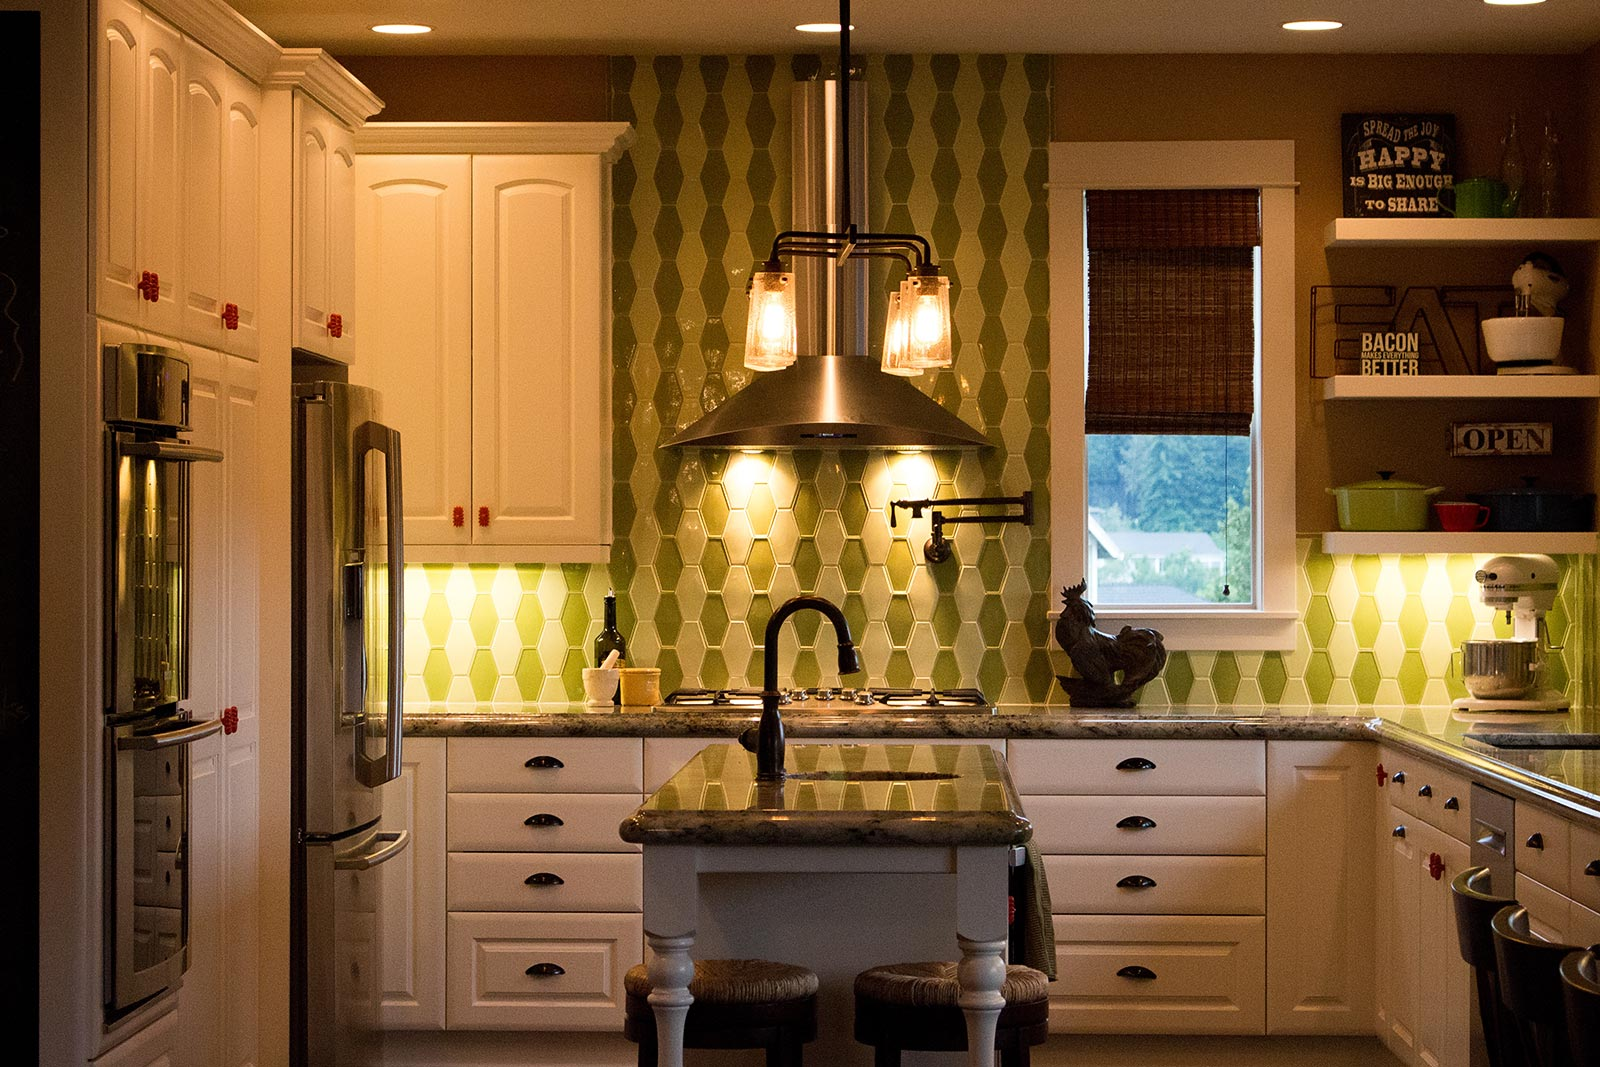 Colorful eclectic kitchen design. Interior Designer Salem OR - Rebecca Olsen Design Firm